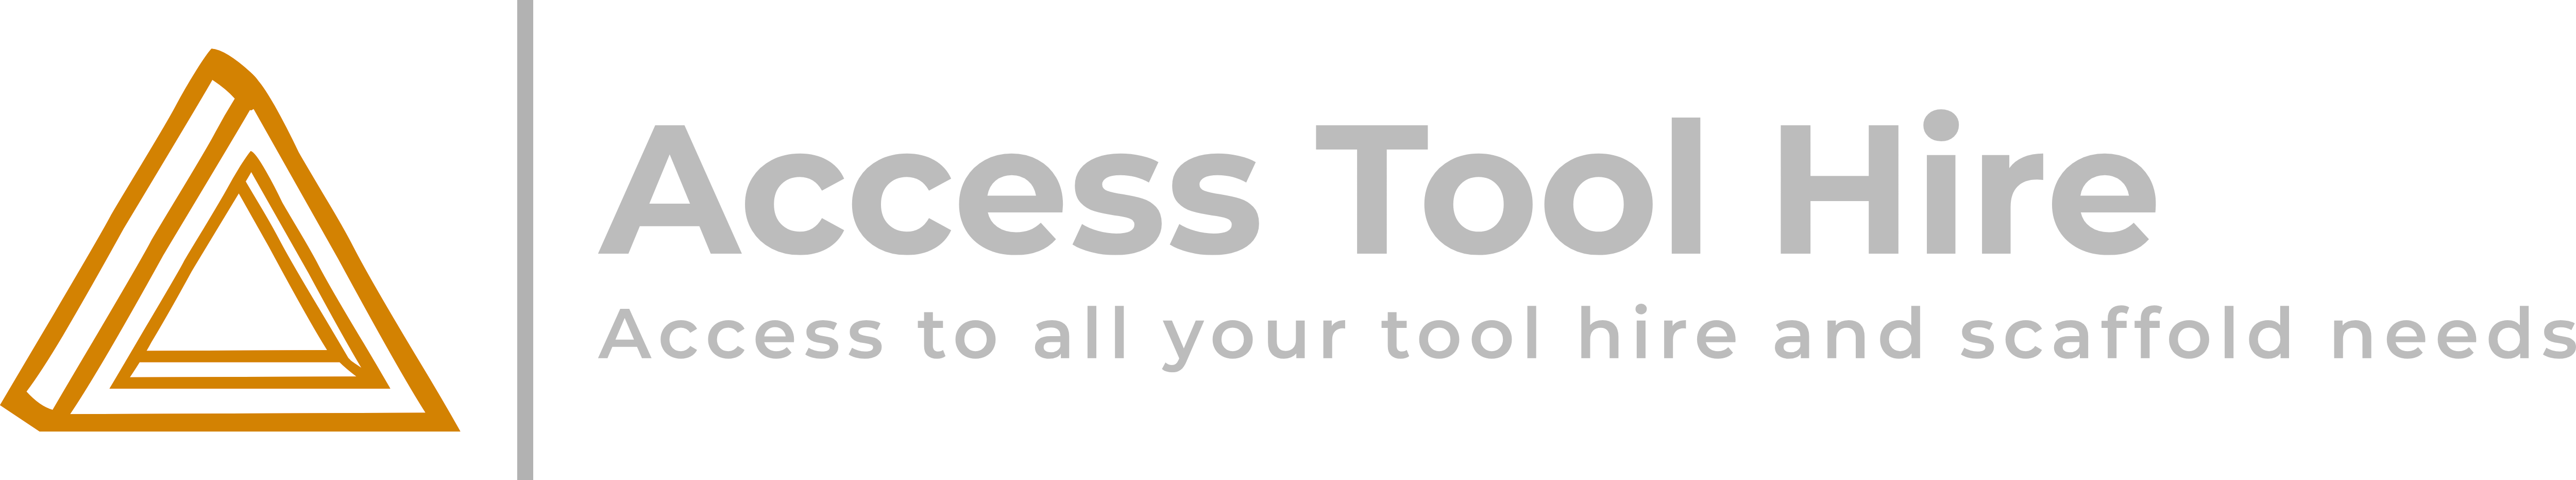 Access Tool Hire